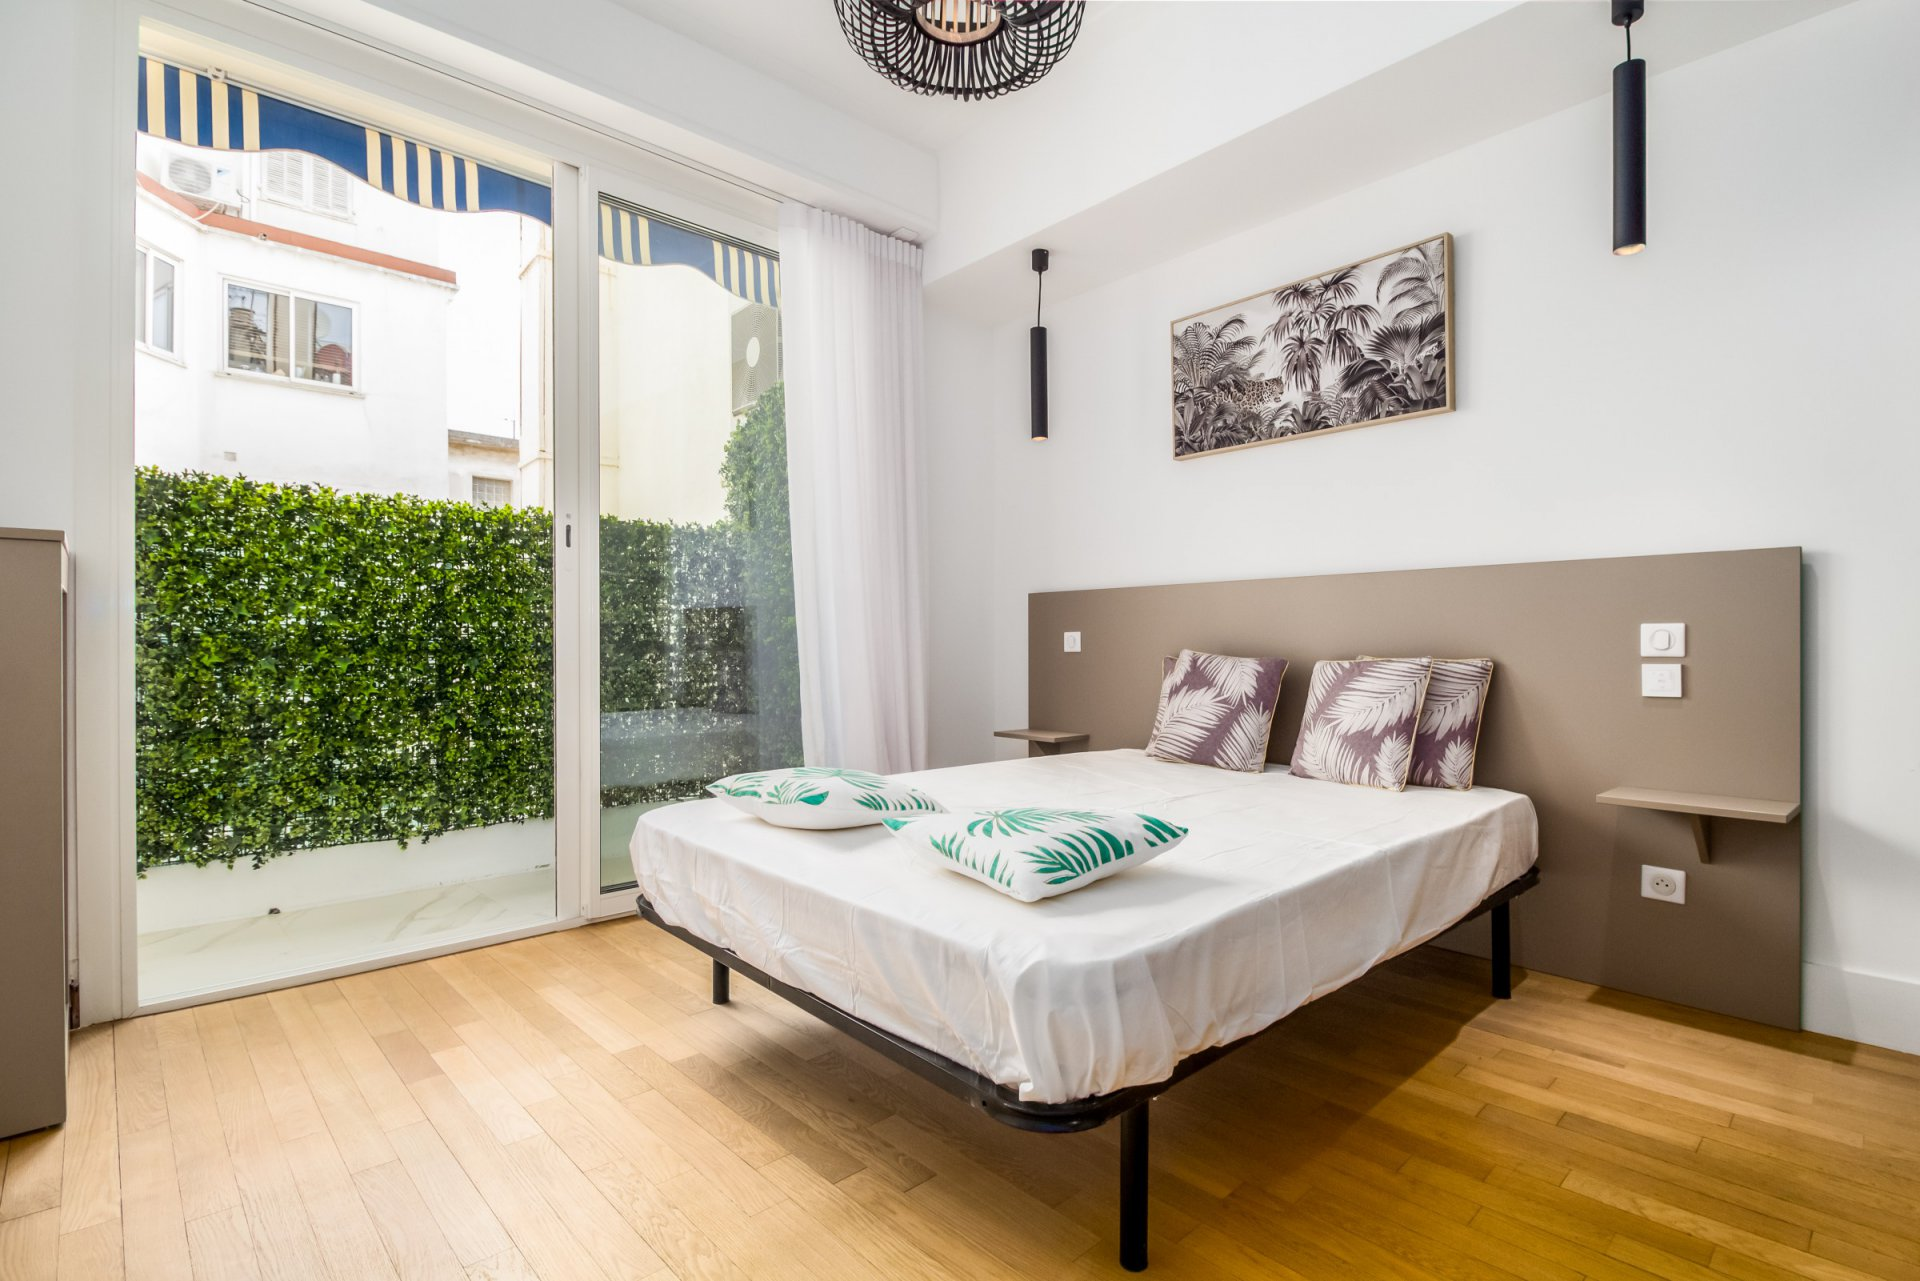 3-room in beautiful Carré d'or district